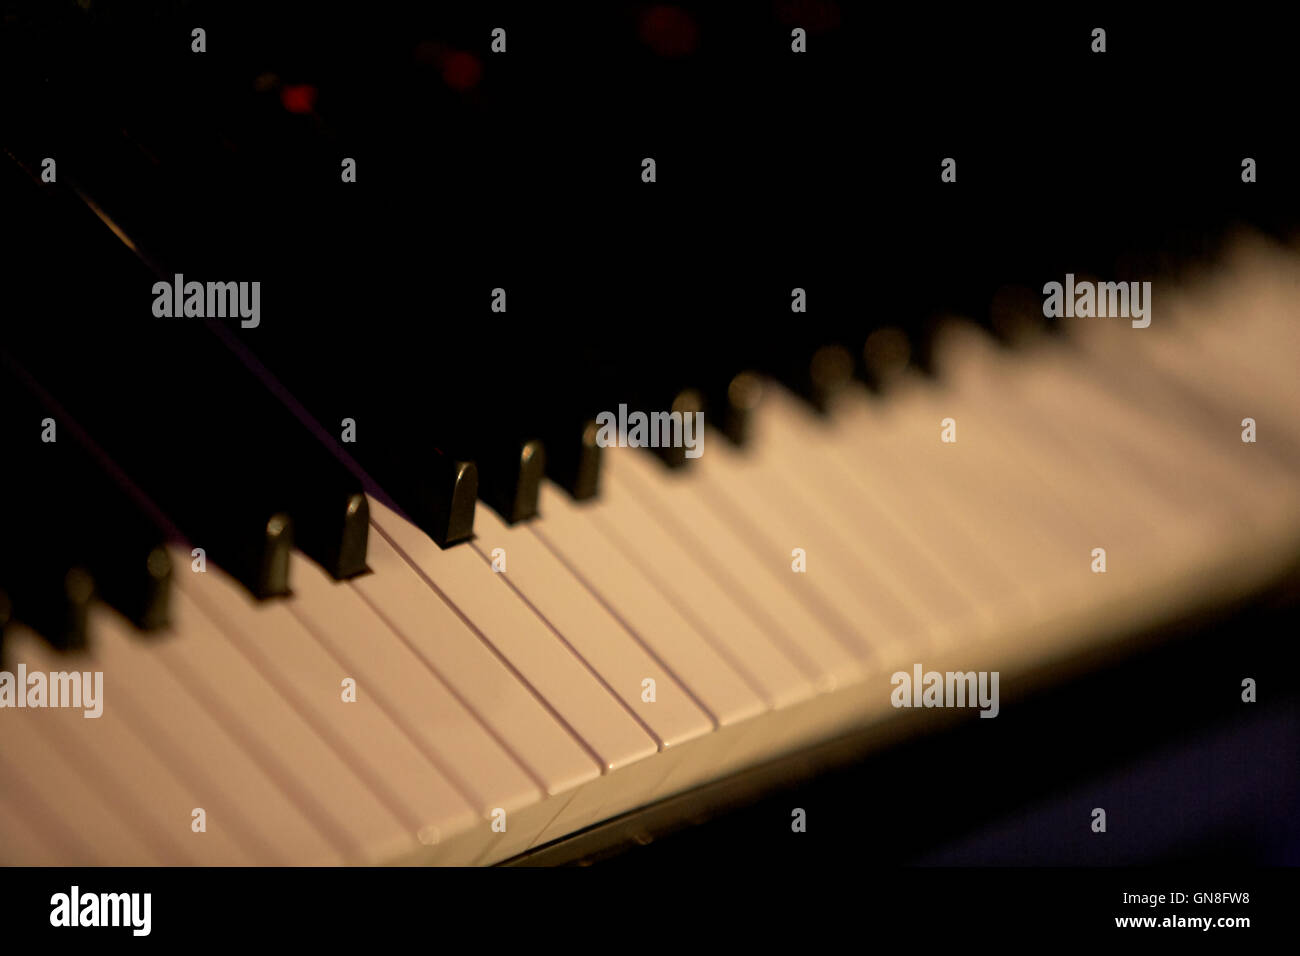 shallow depth of field on dimly lit piano keyboard - Stock Image